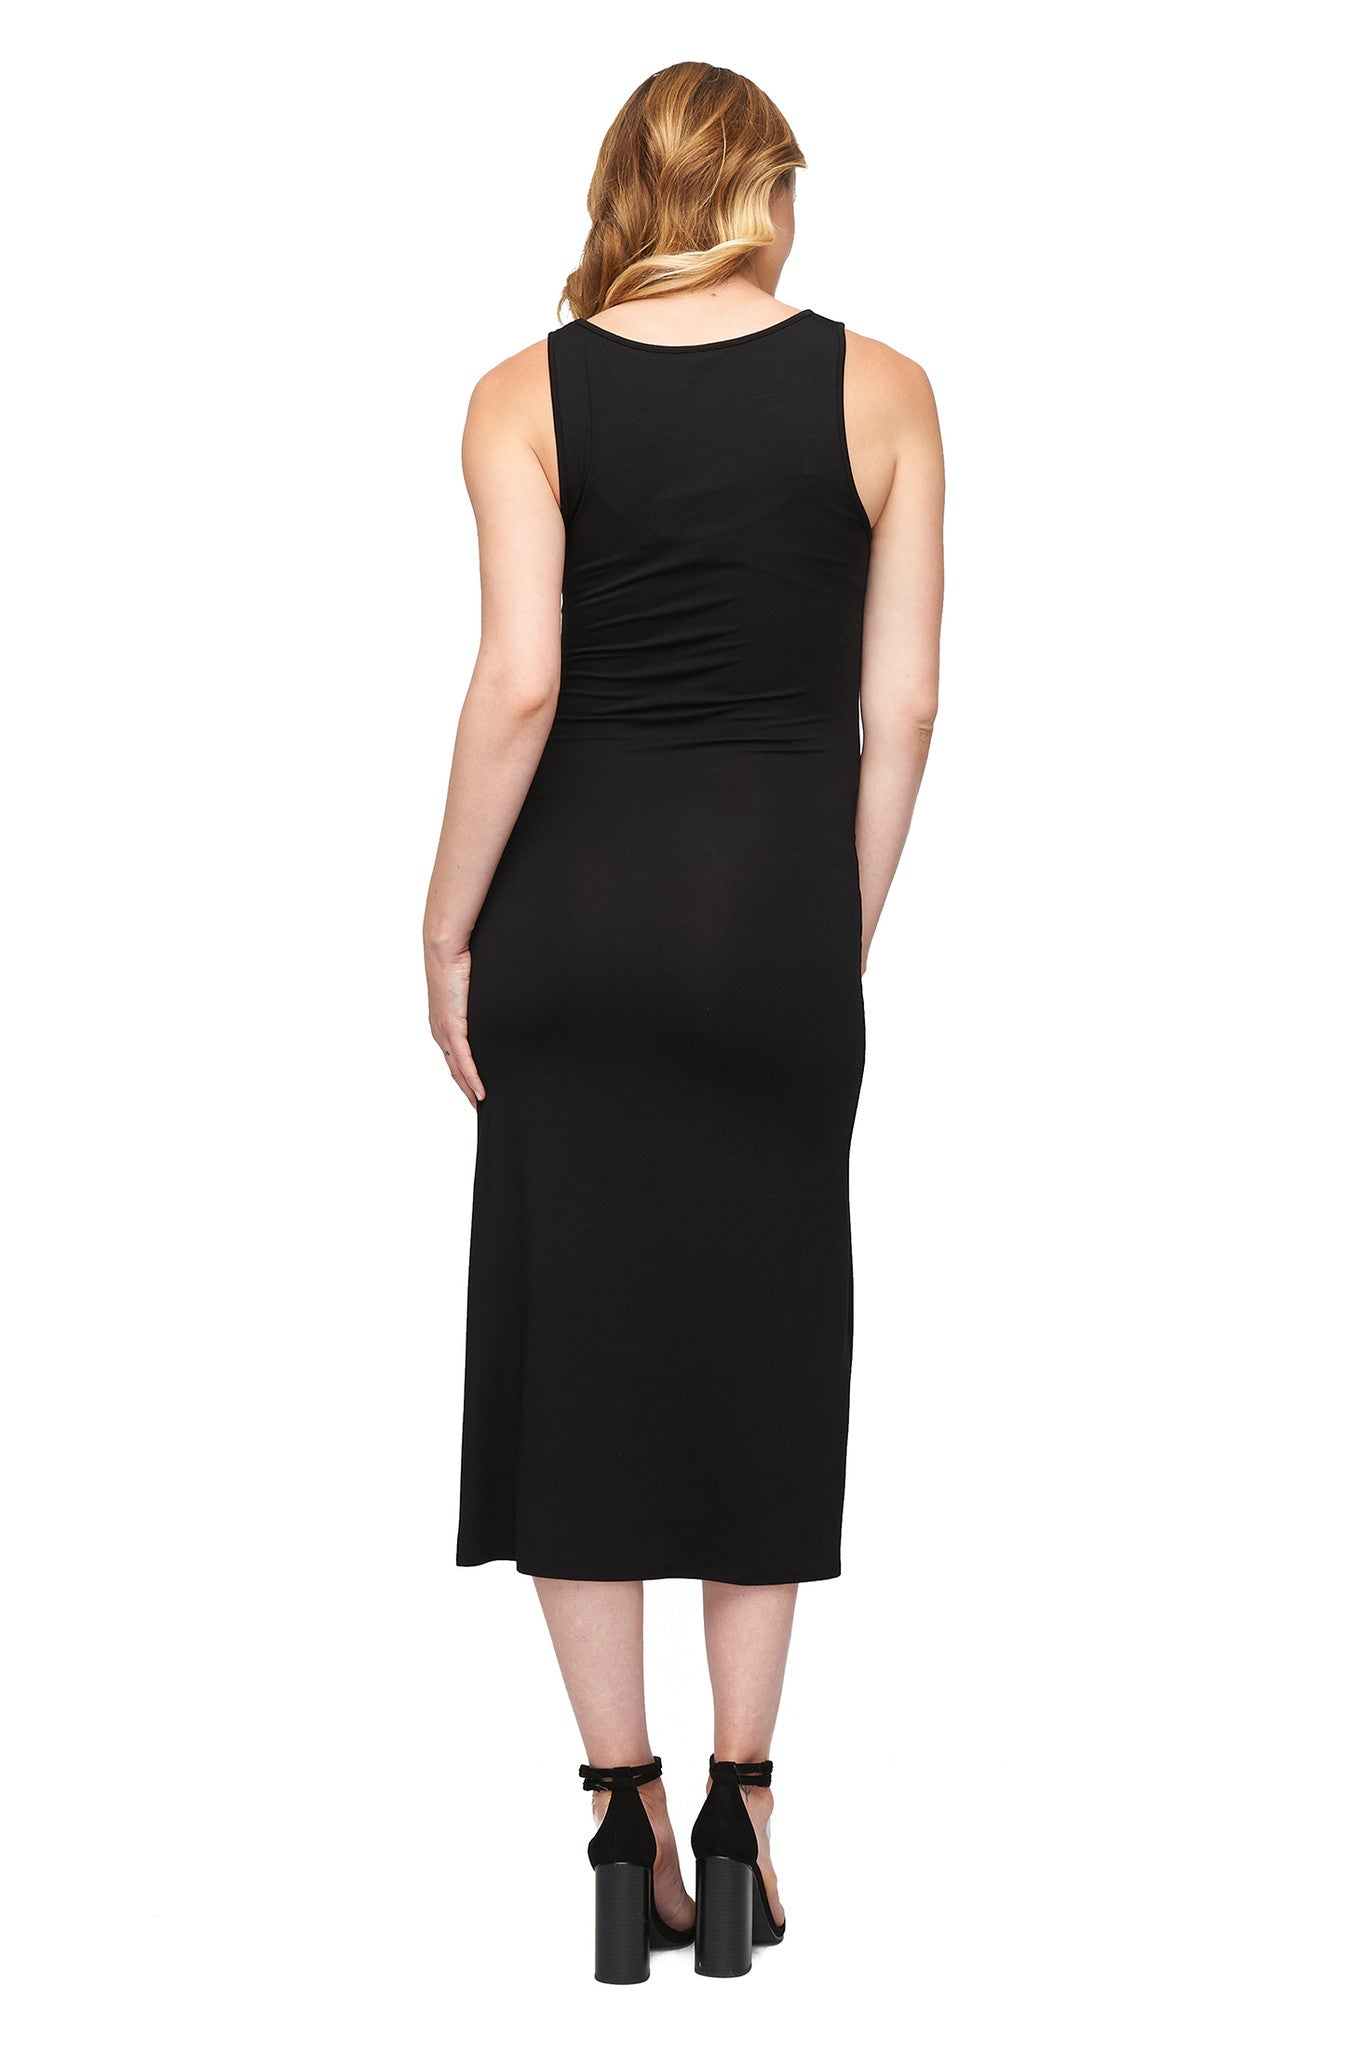 Yahaira Dress - Black